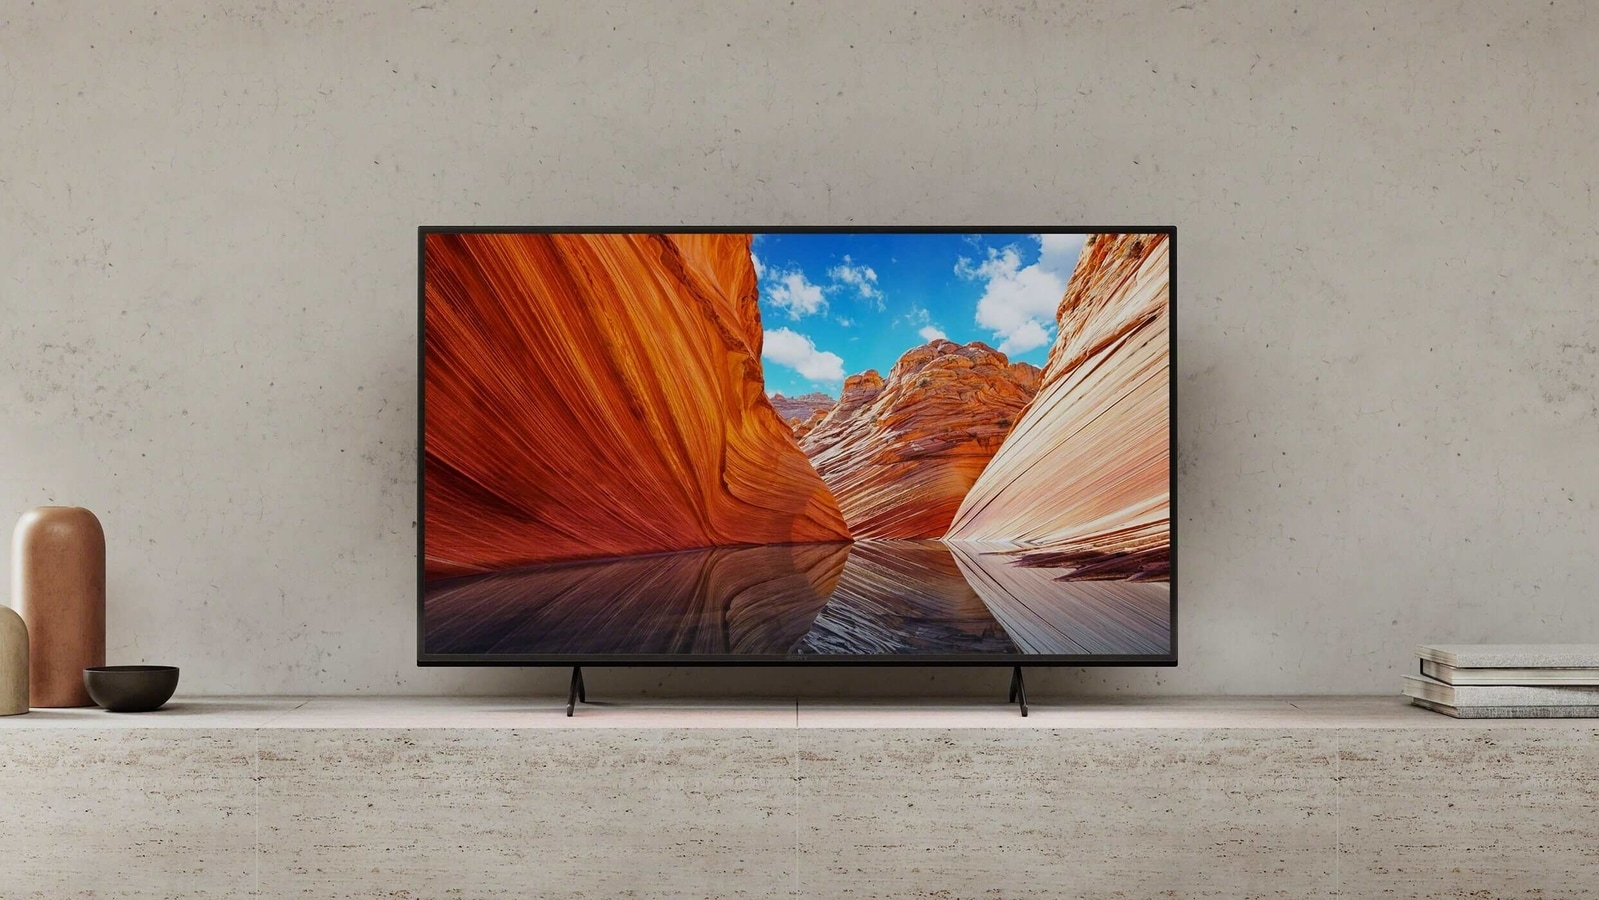 Sony launches Bravia X80J TV series in India ranging from 43-inch to 75-inch screen size - HT Tech